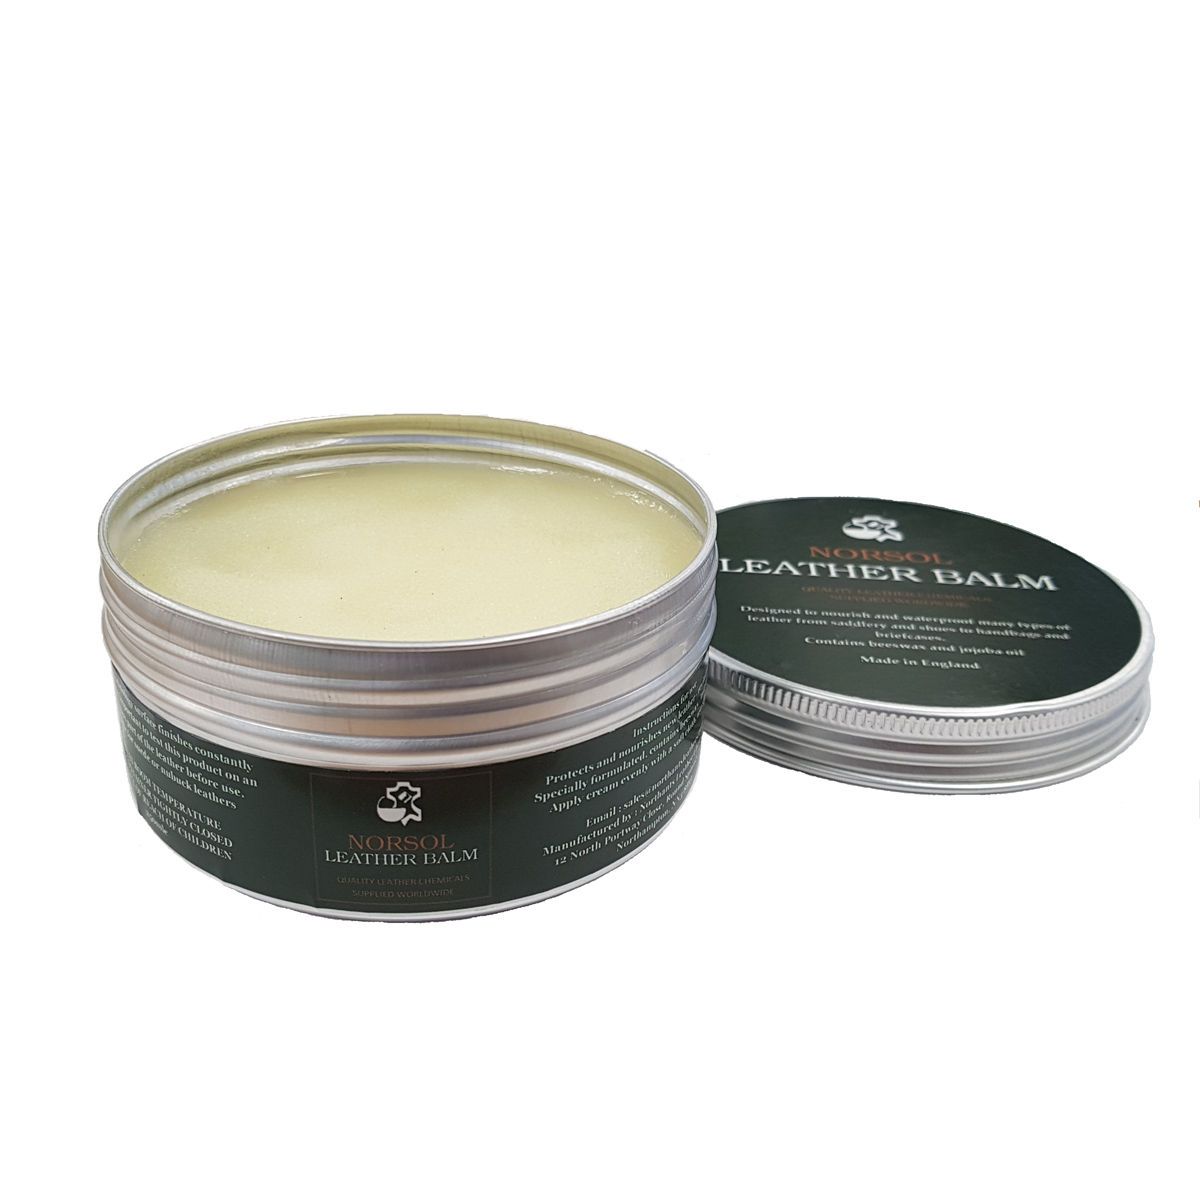 Norsol Leather Balm